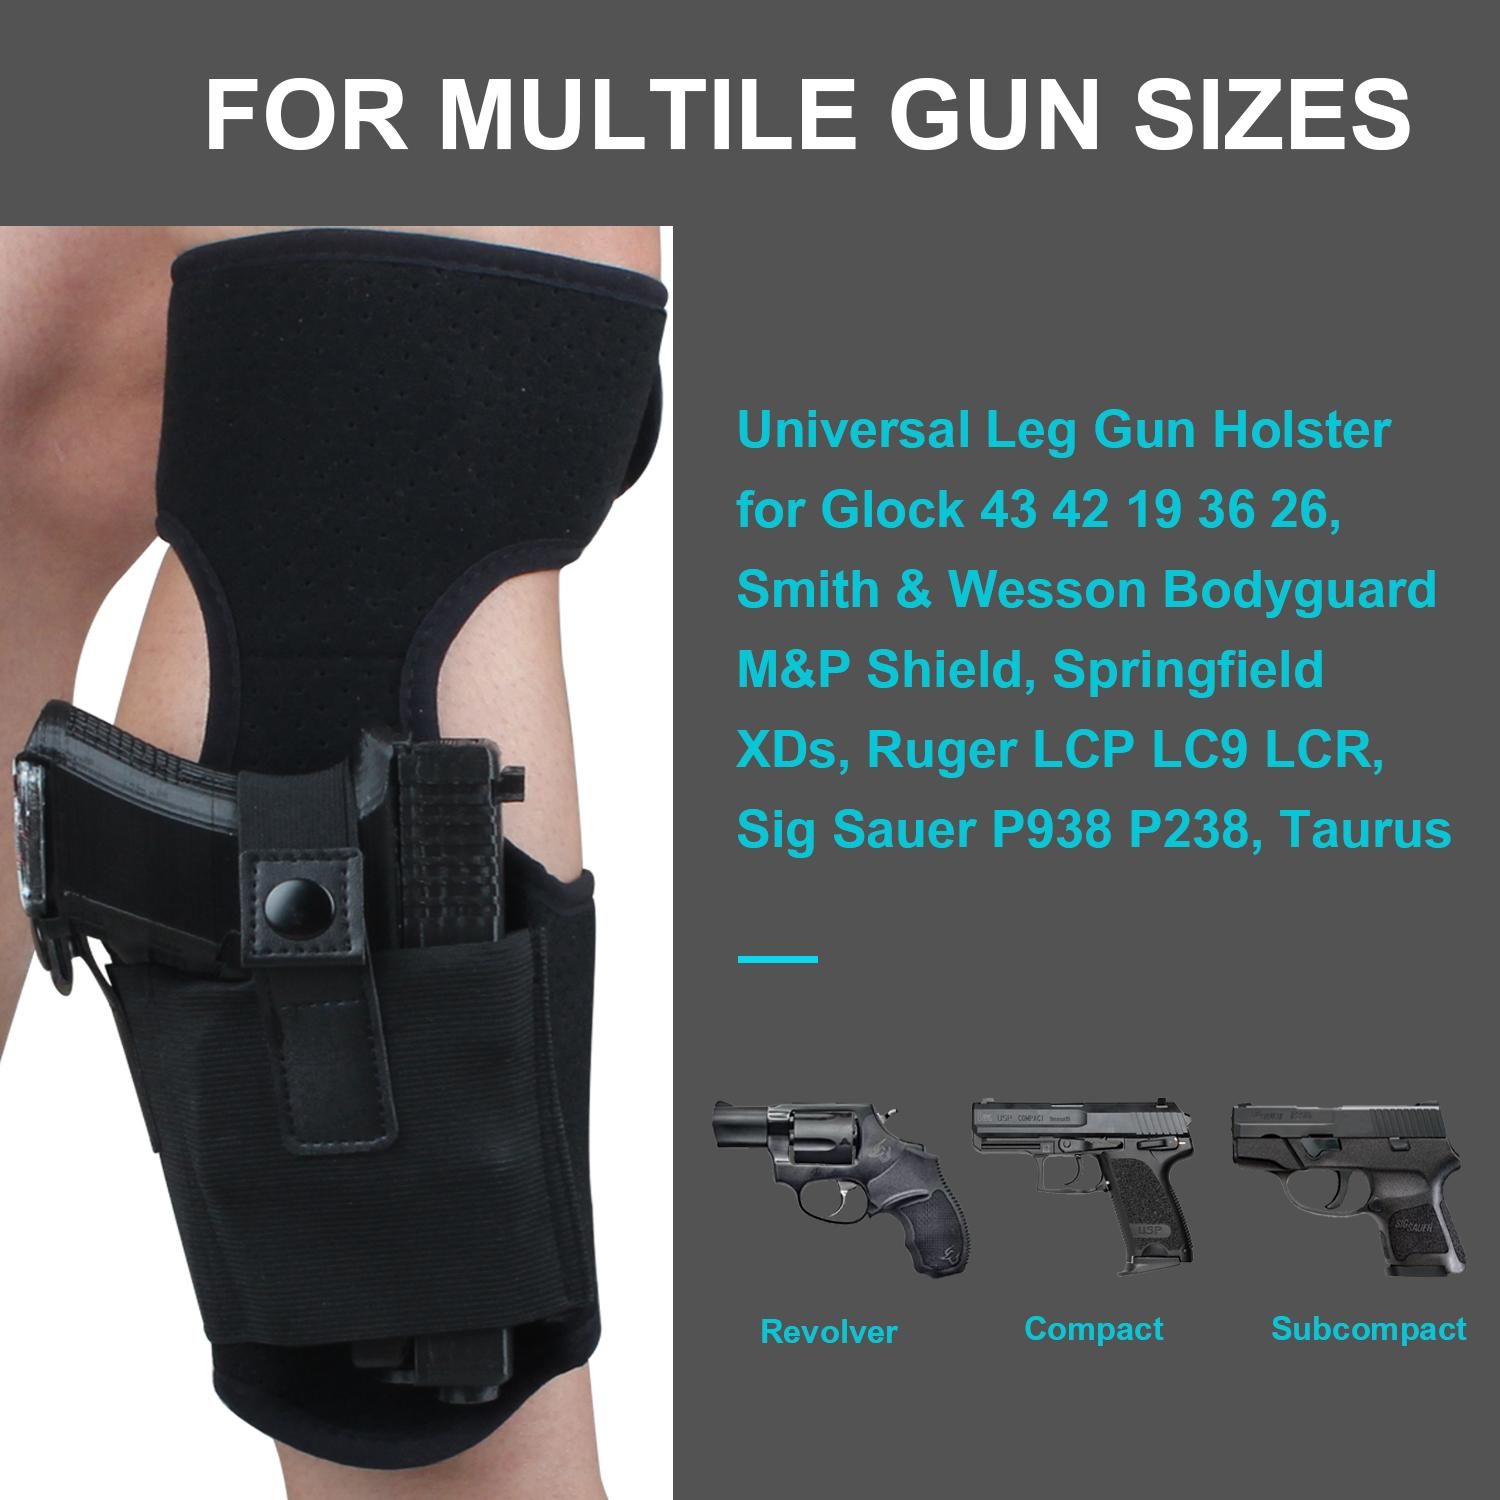 Ankle Holster for Concealed Carry | Universal Leg Carry Gun Holster with  Magazine Pouch Fits Ruger LCP 380 G26 G42 P938 S&W M&P